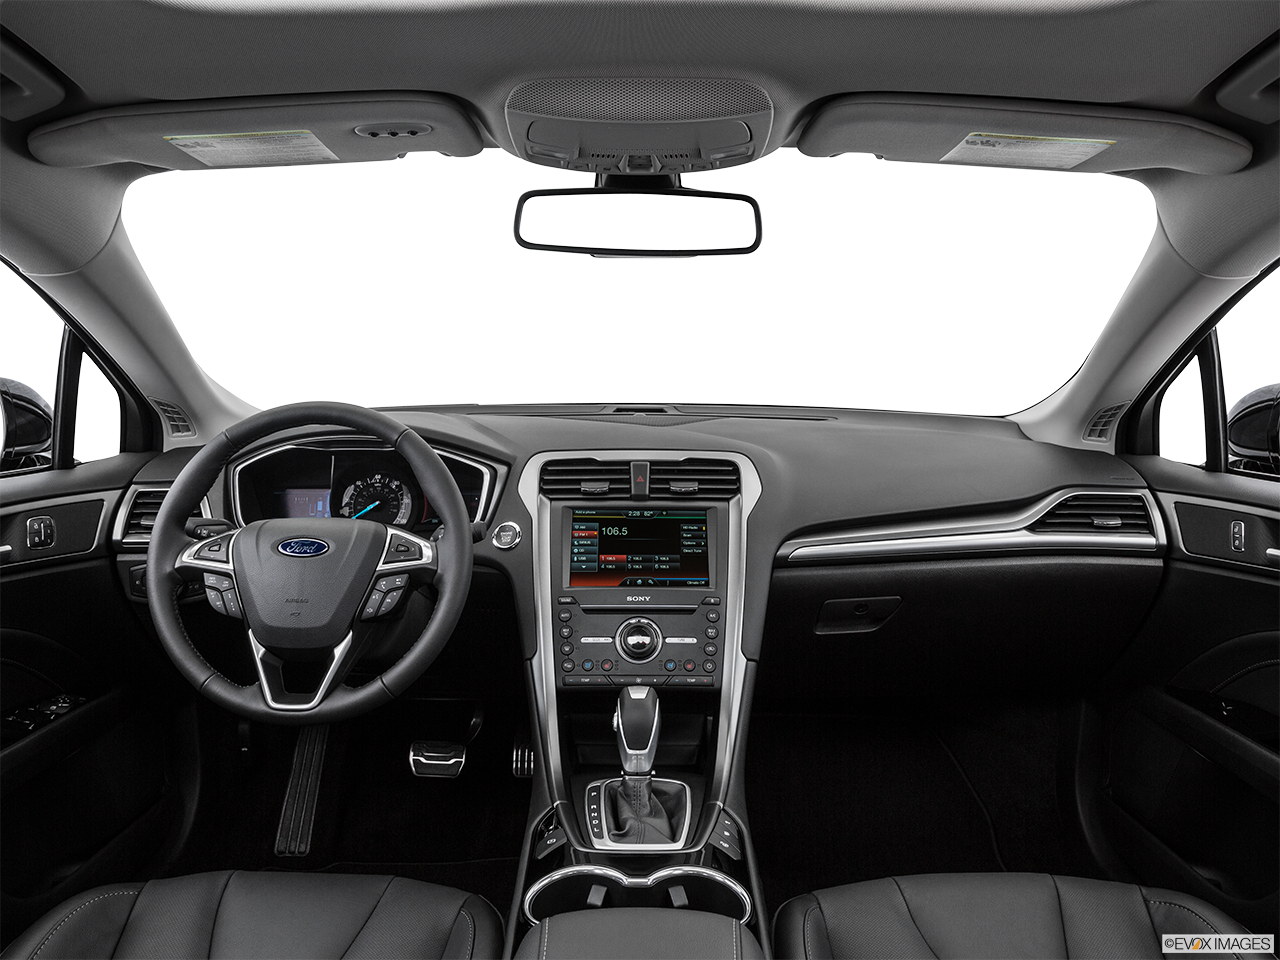 2016 Ford Fusion SE Energi Interior Overview